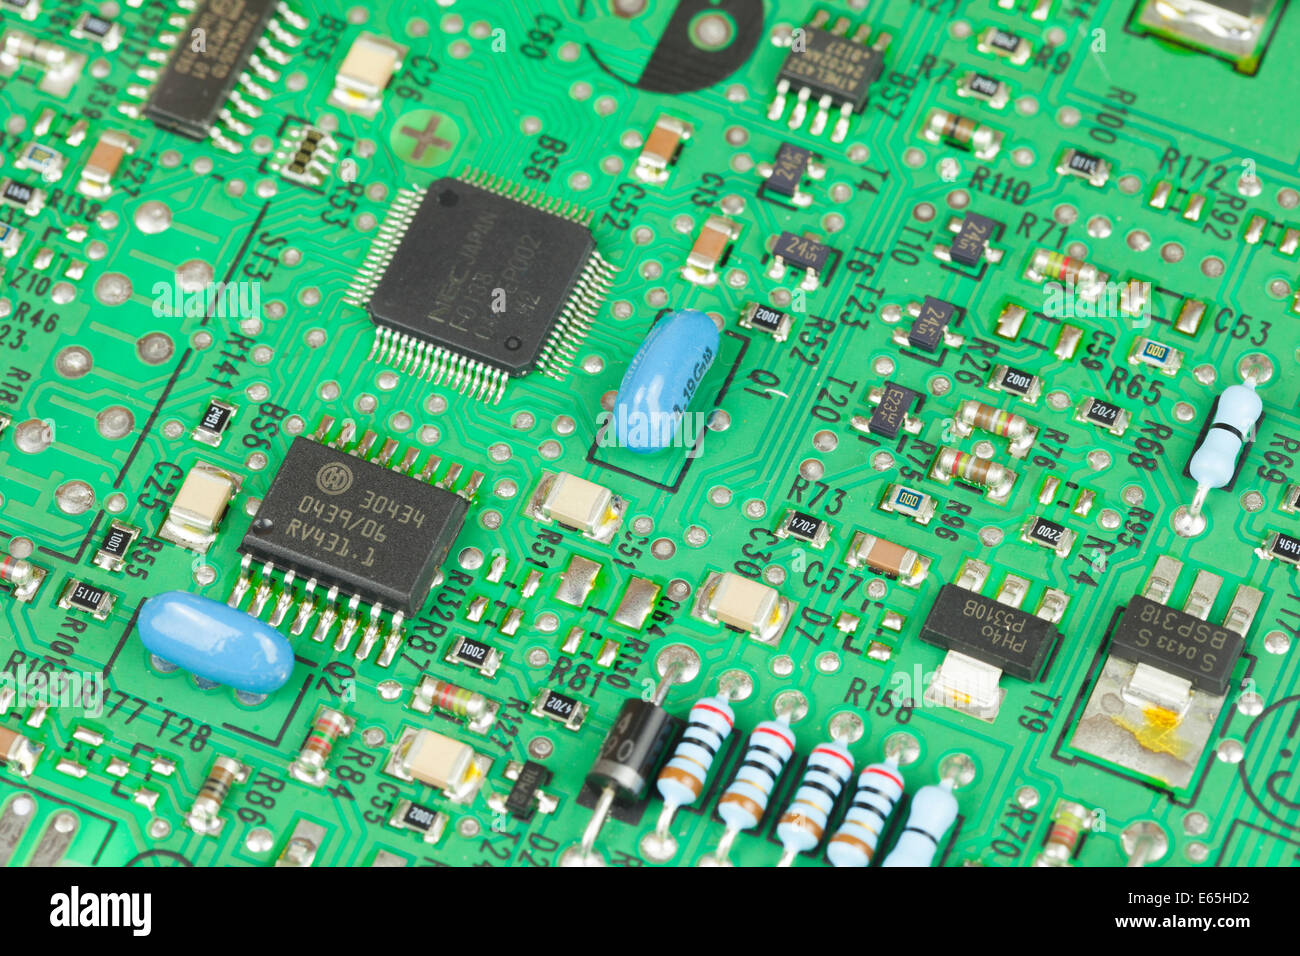 Electrical Circuit Board Printed Boards In Mohali Punjab Your Iphone 6 Into A Moeco Tokyo Railway Electric Stock Photos